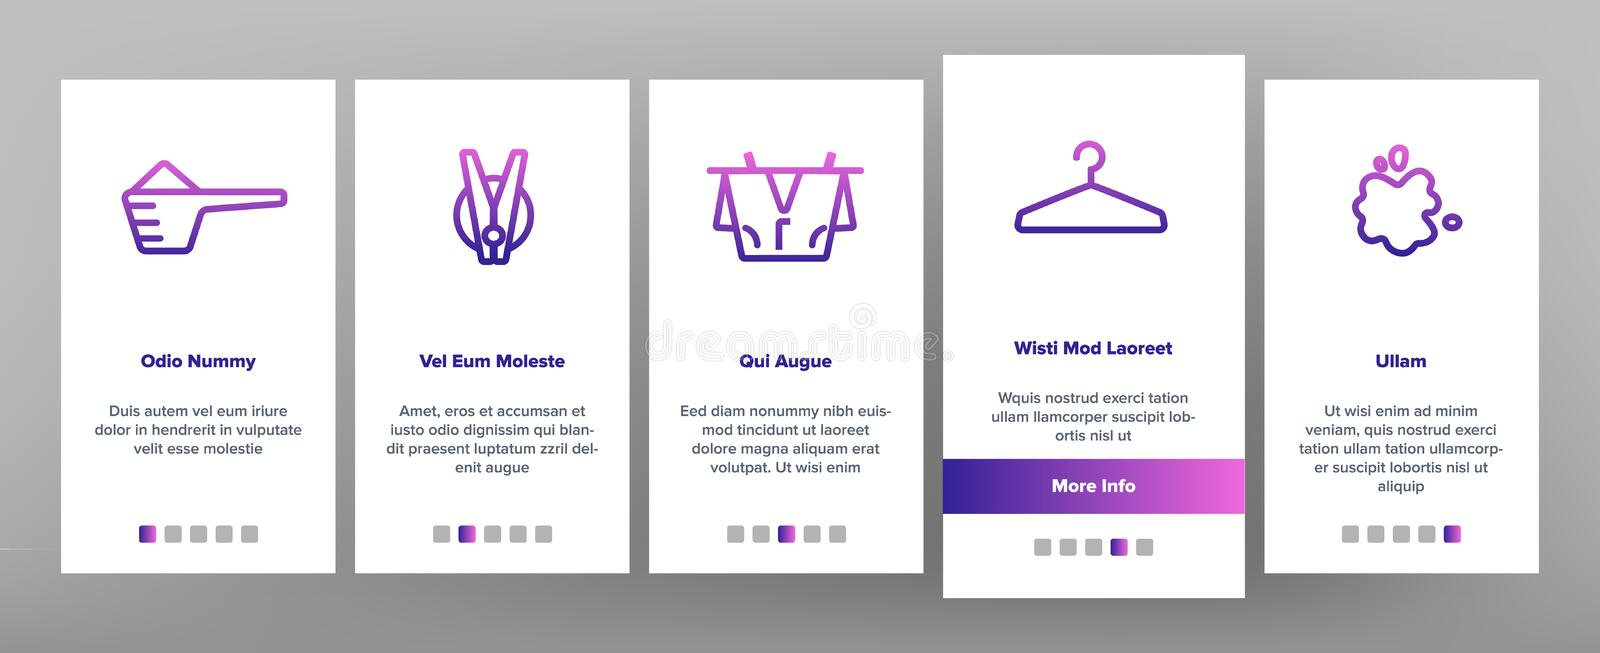 Laundry Line Icon Set Vector Onboarding. Mobile App Page Screen. Washing Machine. Clean Dry Cotton. Cloth Laundry Pictogram. Thin Outline Illustration royalty free illustration